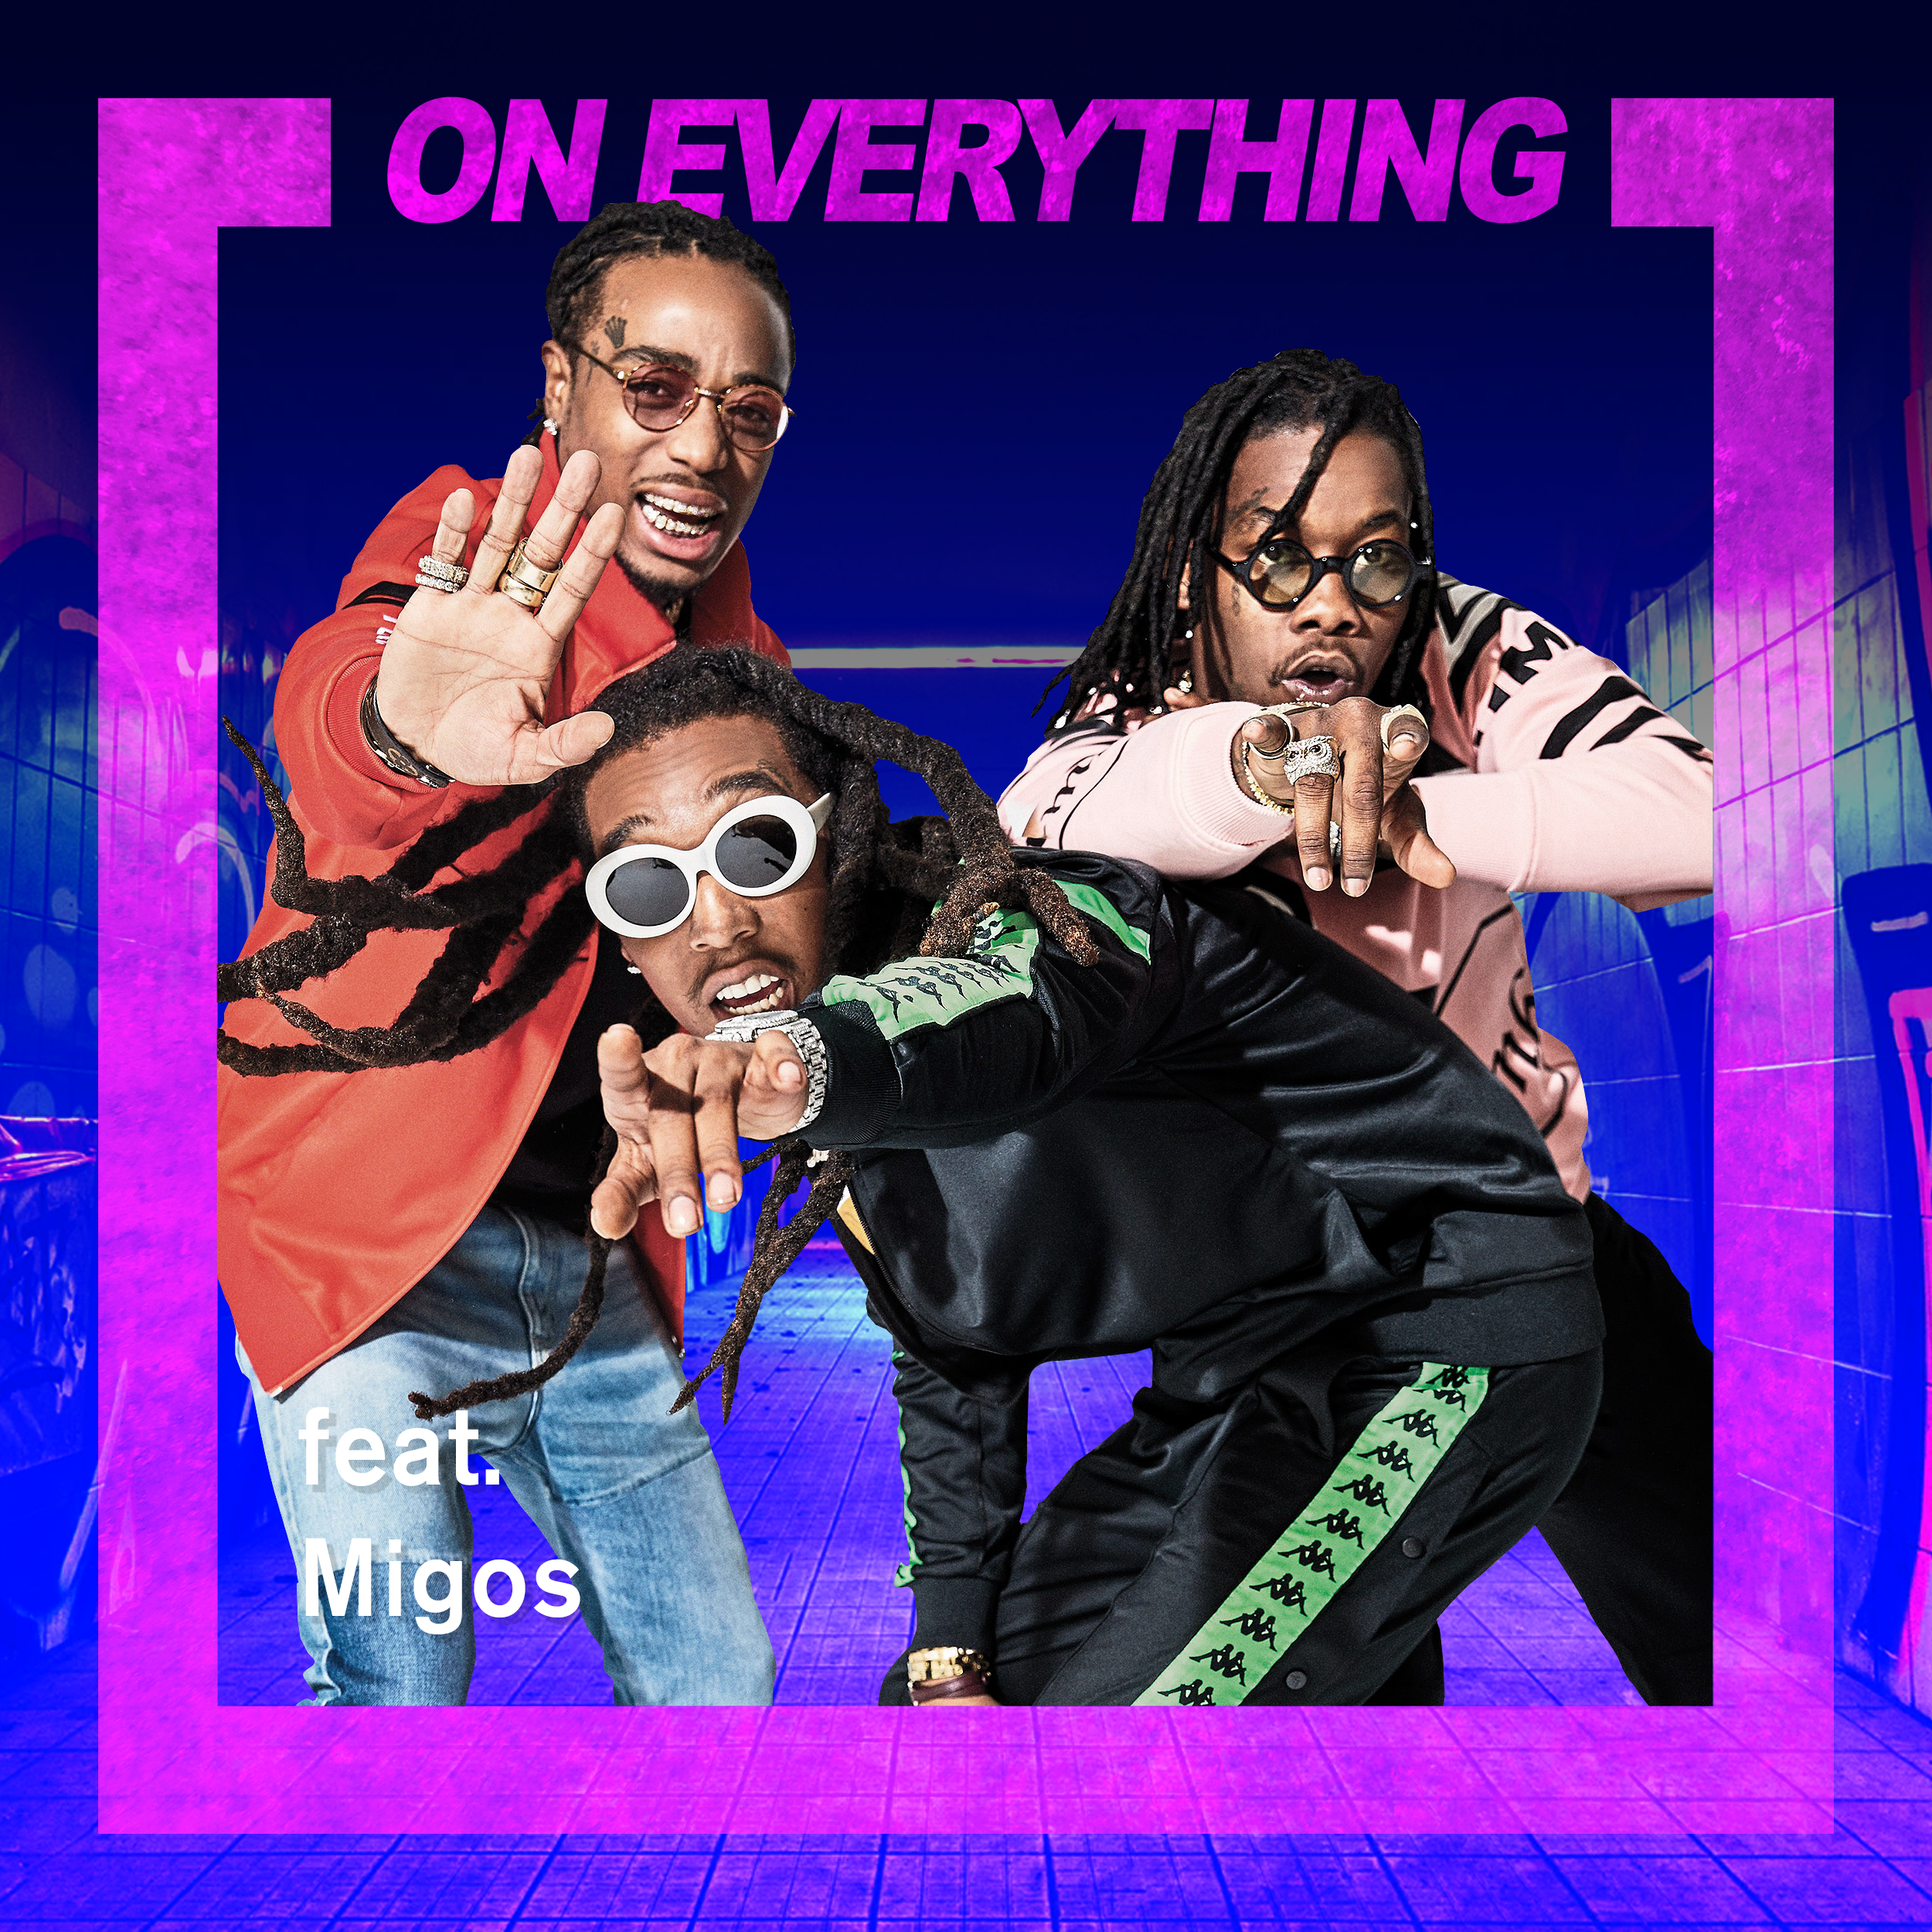 OnEverything-Graffitti-Migos.png